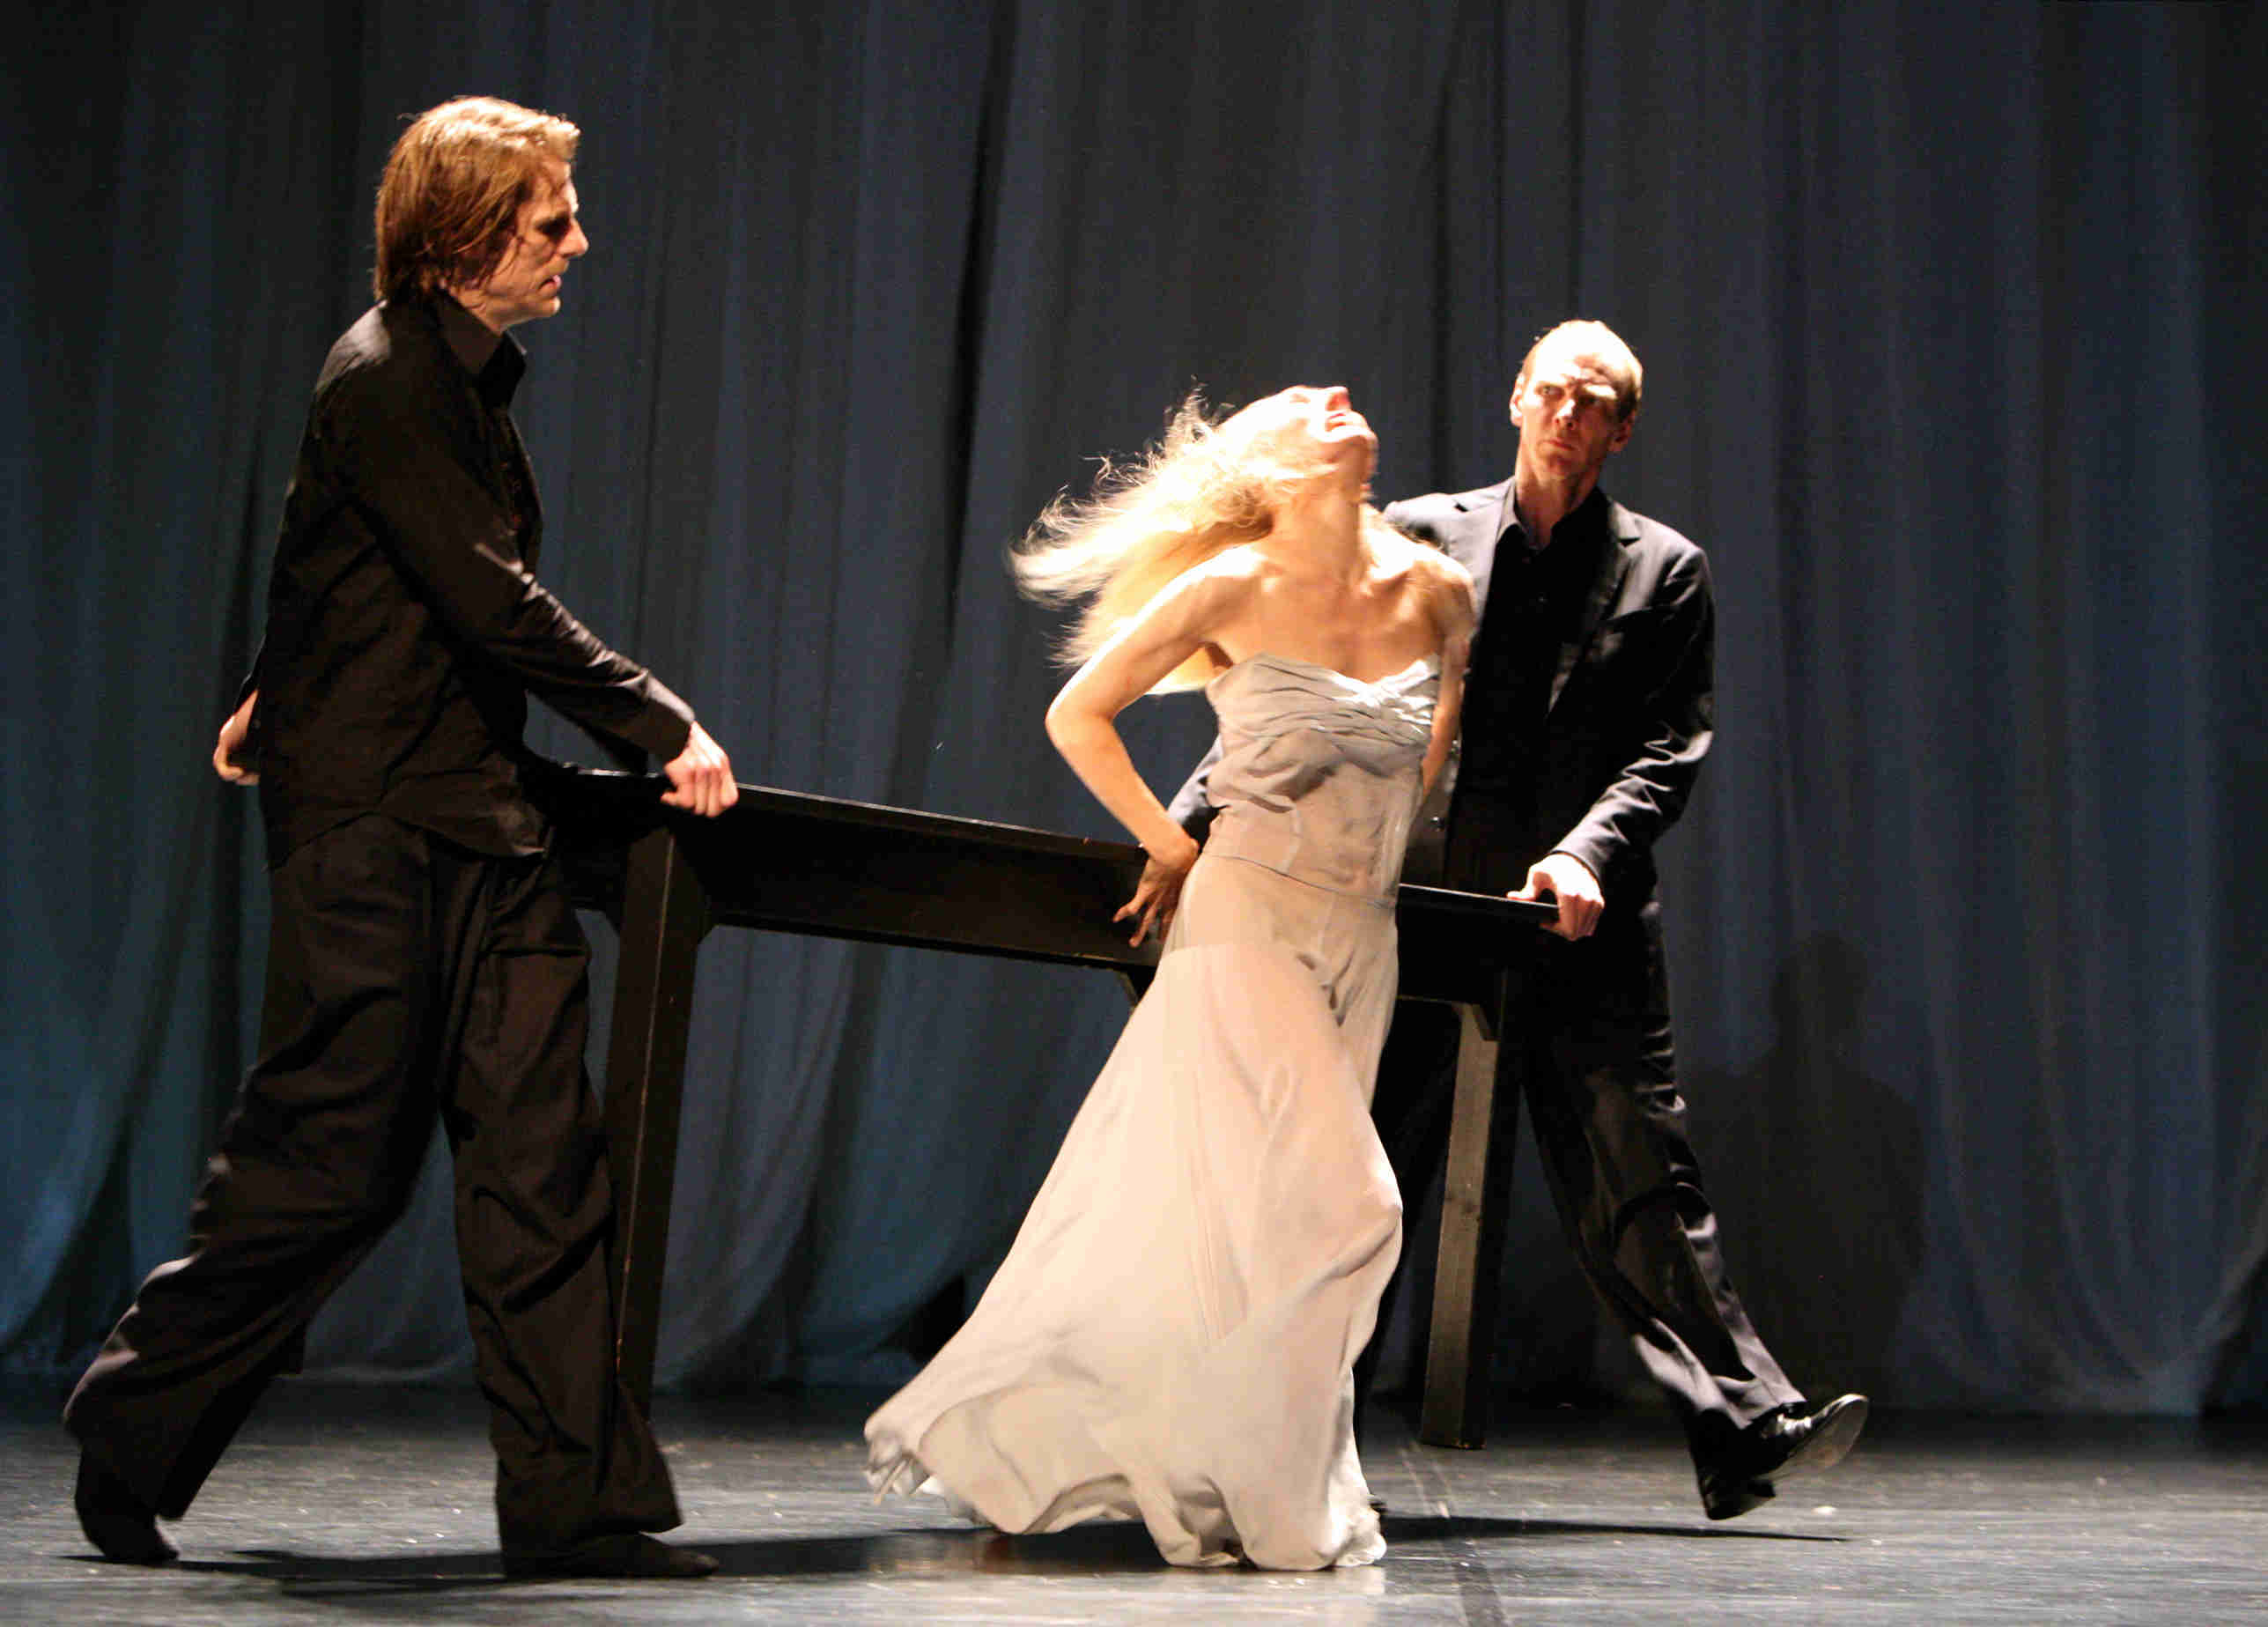 Michael Strecker, Julie Shanahan and Andrey Berezin of Tanztheater Wuppertal Pina Bausch in Sweet Mambo